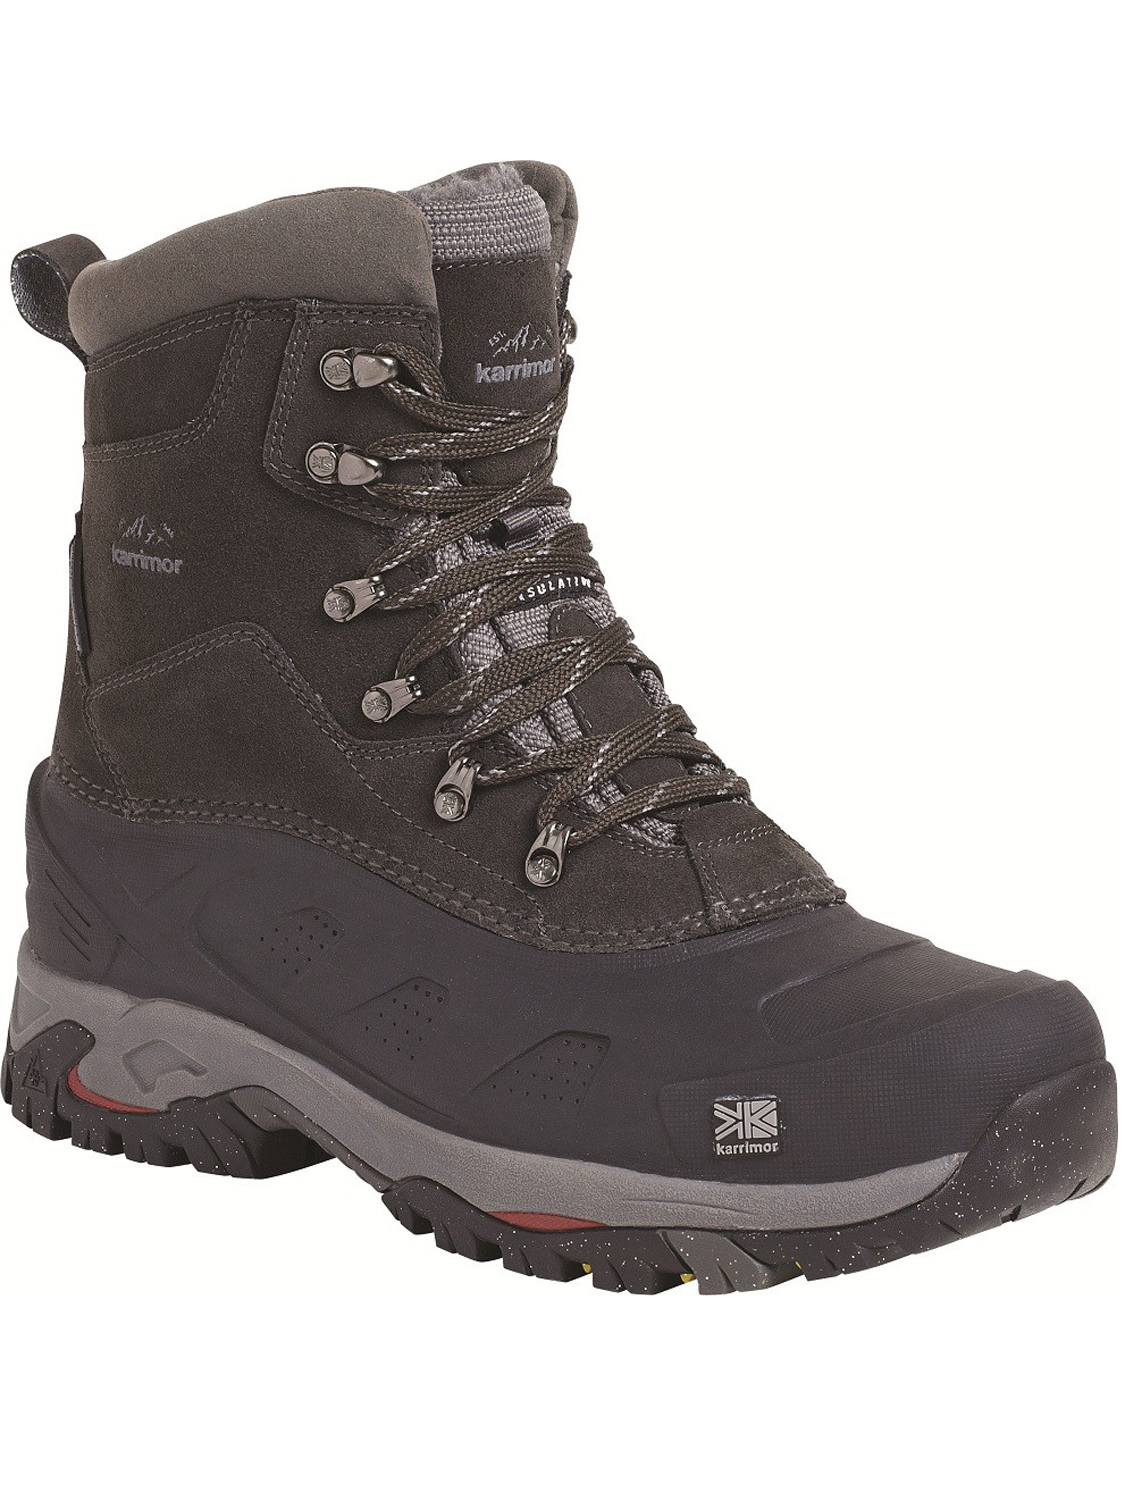 Mens Karrimor Snowfur 2 Boot Black - Snow Boots, Outdoor